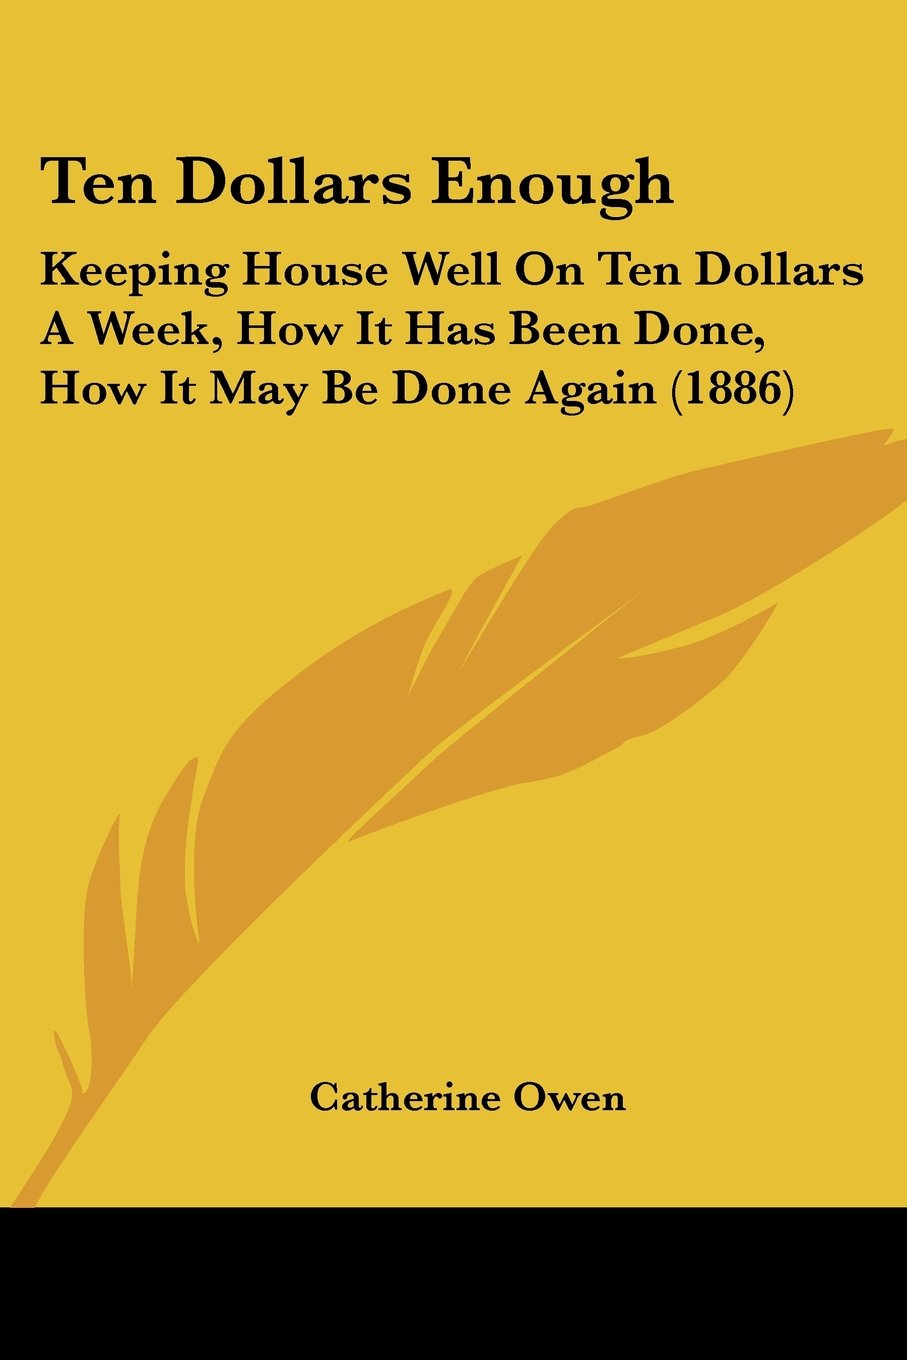 Read Online Ten Dollars Enough: Keeping House Well On Ten Dollars A Week, How It Has Been Done, How It May Be Done Again (1886) pdf